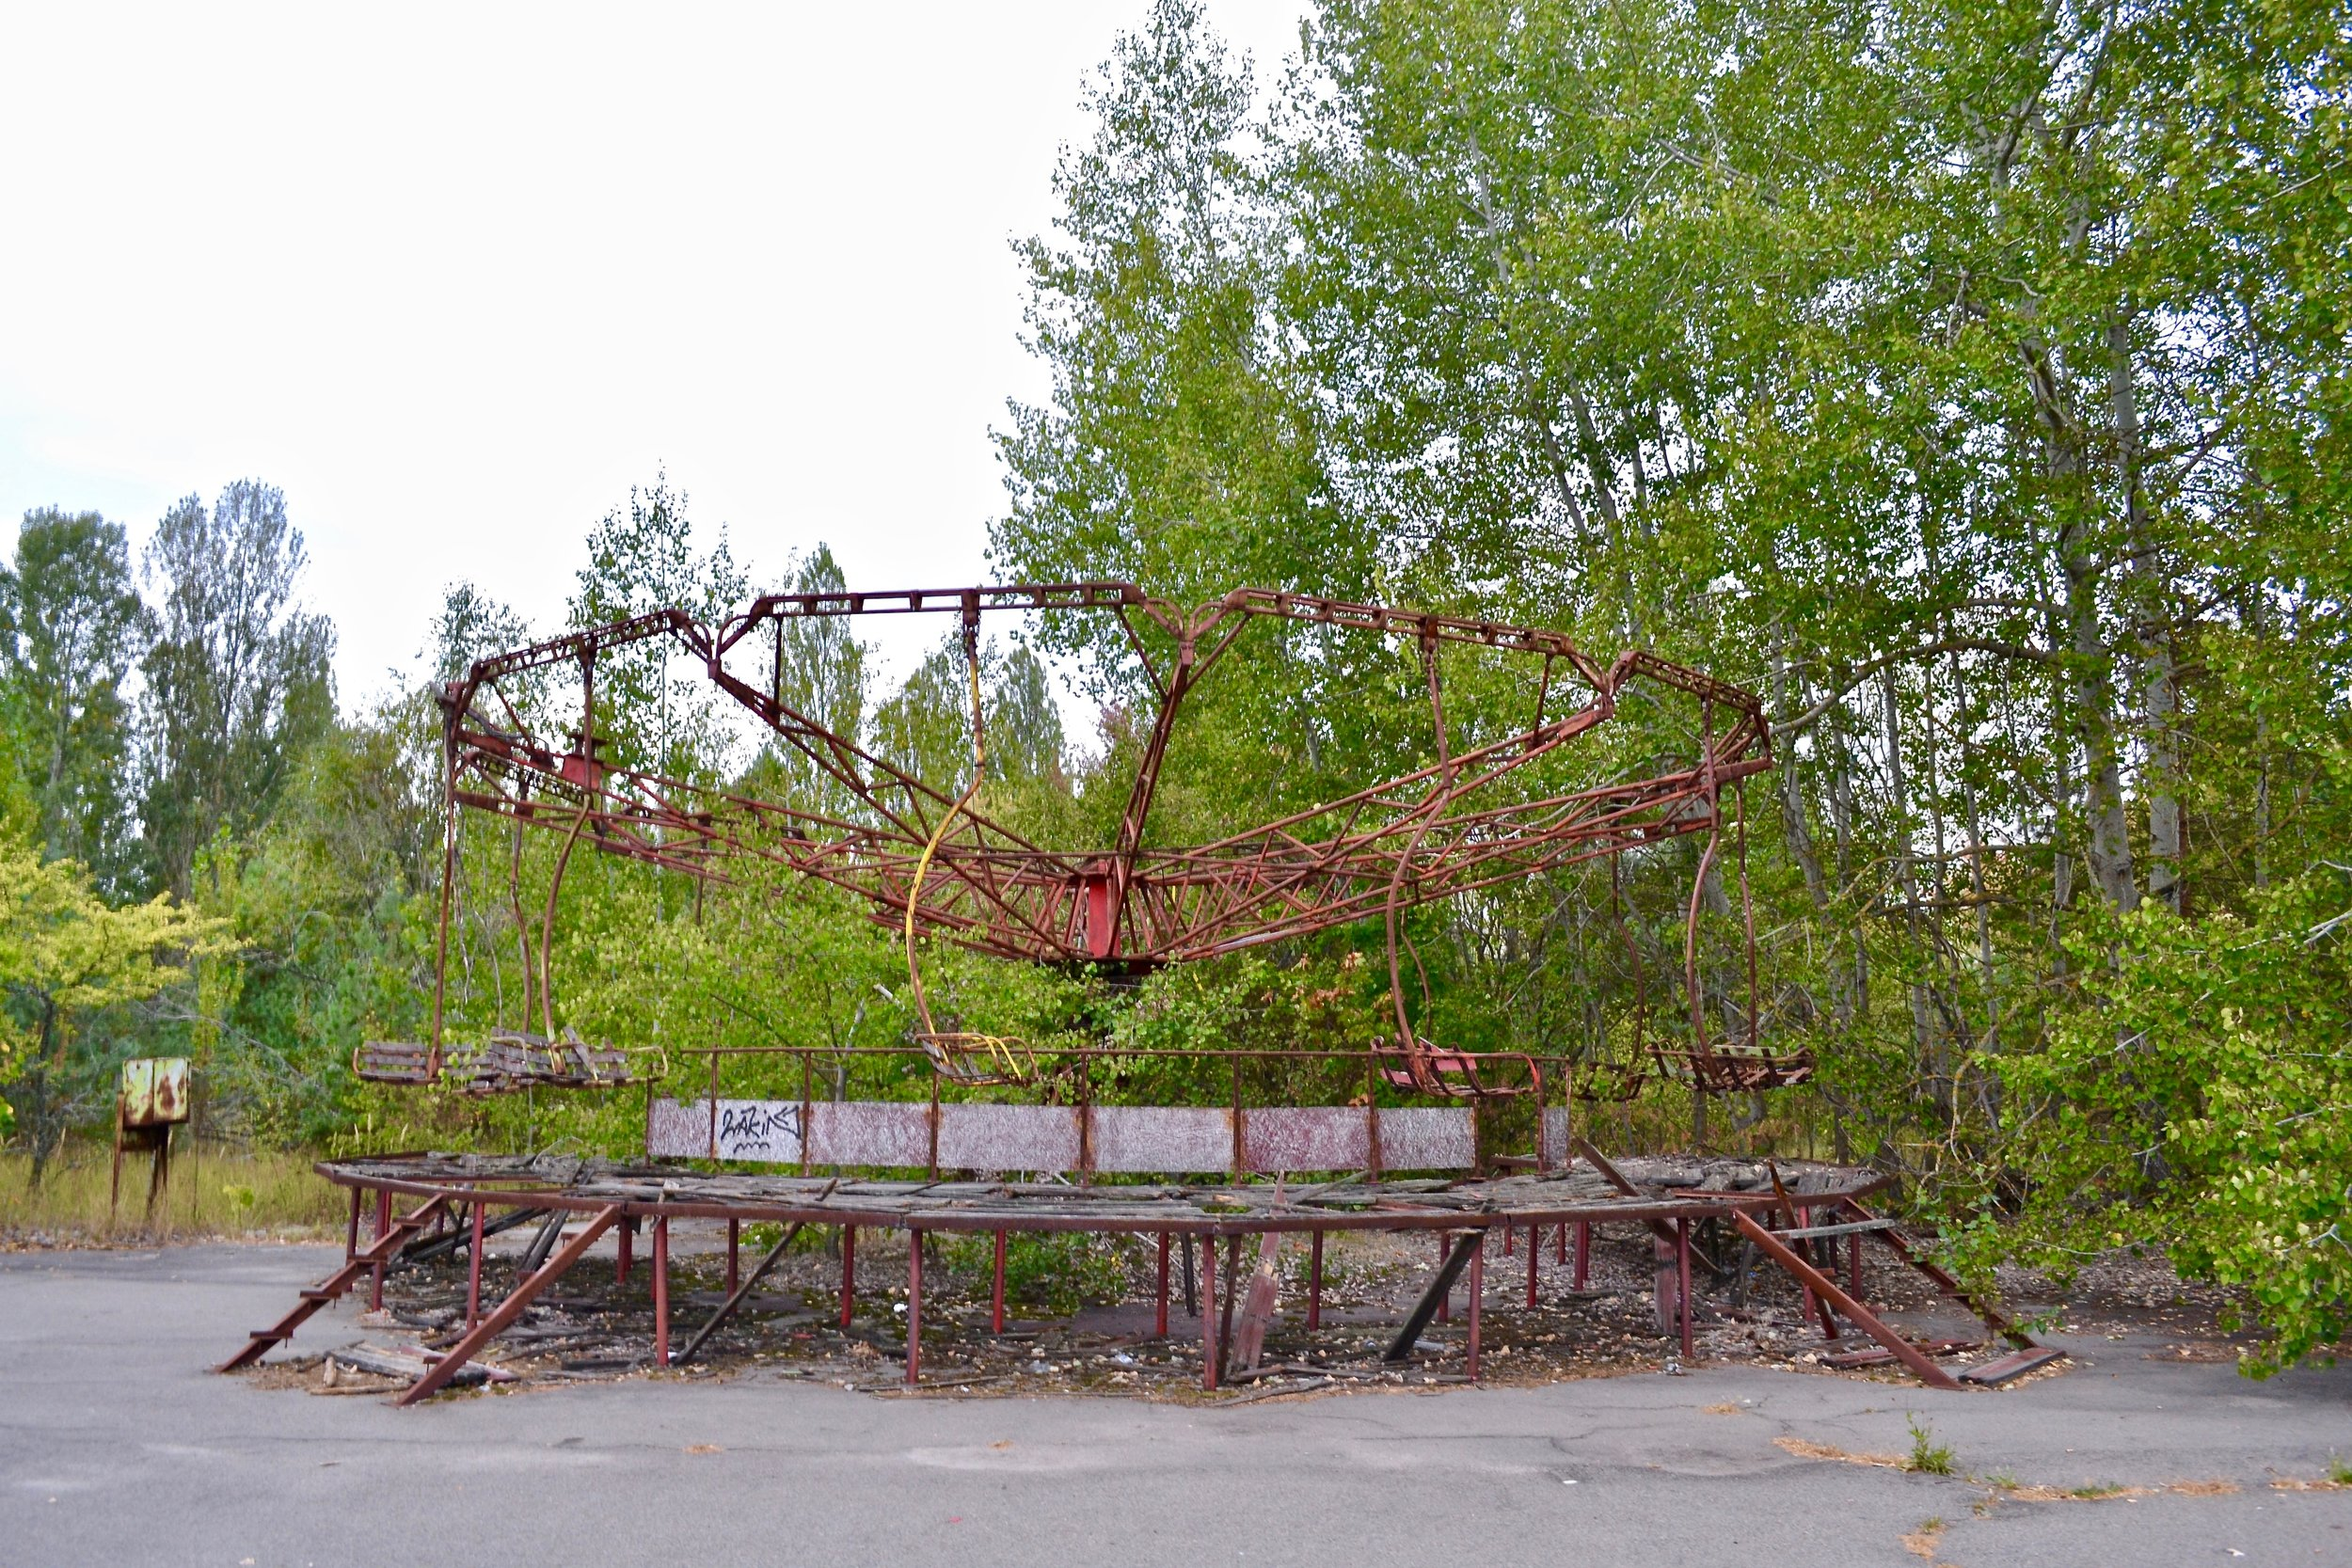 Abandoned Ride at Pripyat